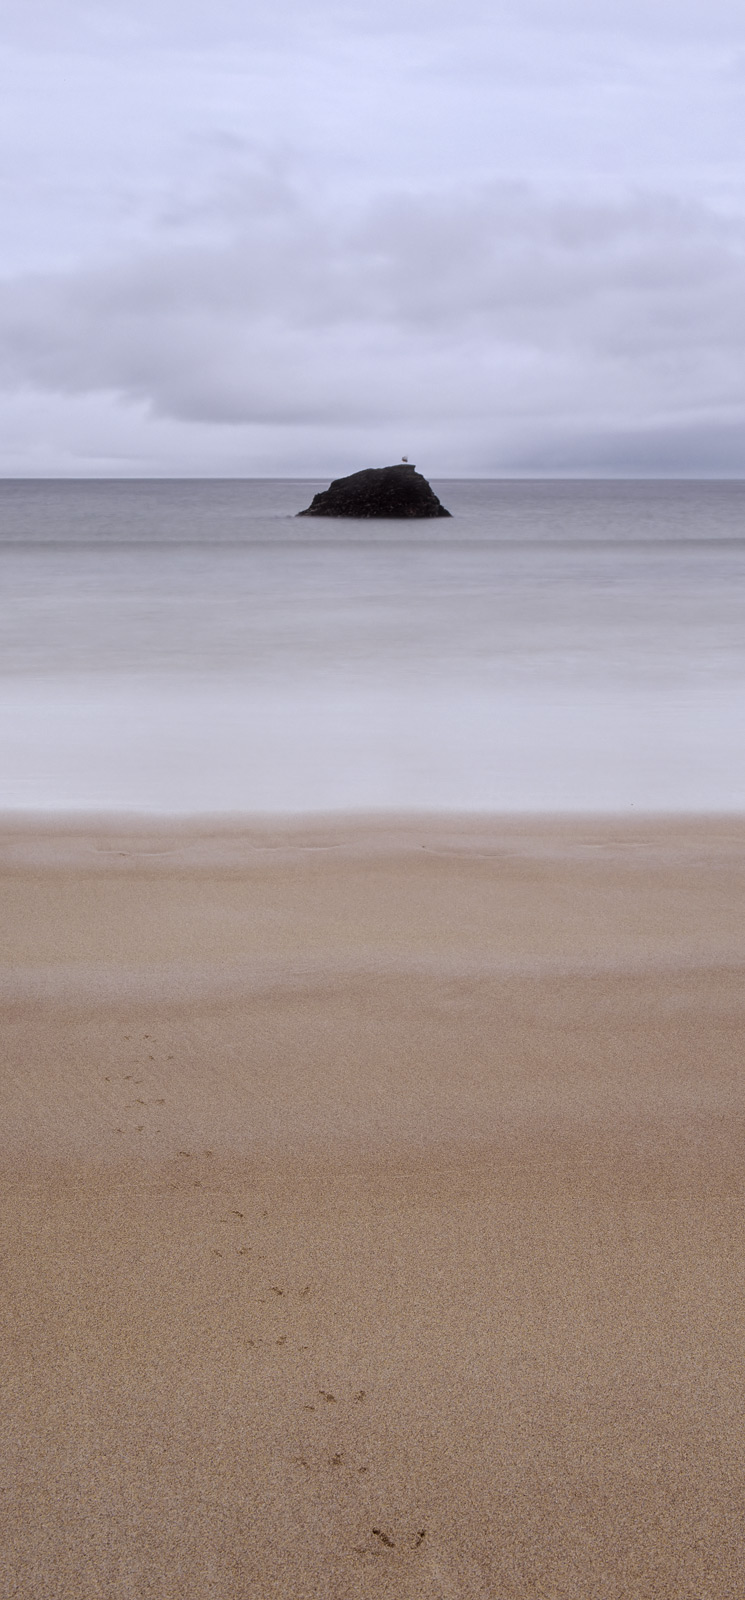 A little bit of poetic license with the title granted but this was one fabulous deserted and lonely beach of scintillating unblemished...